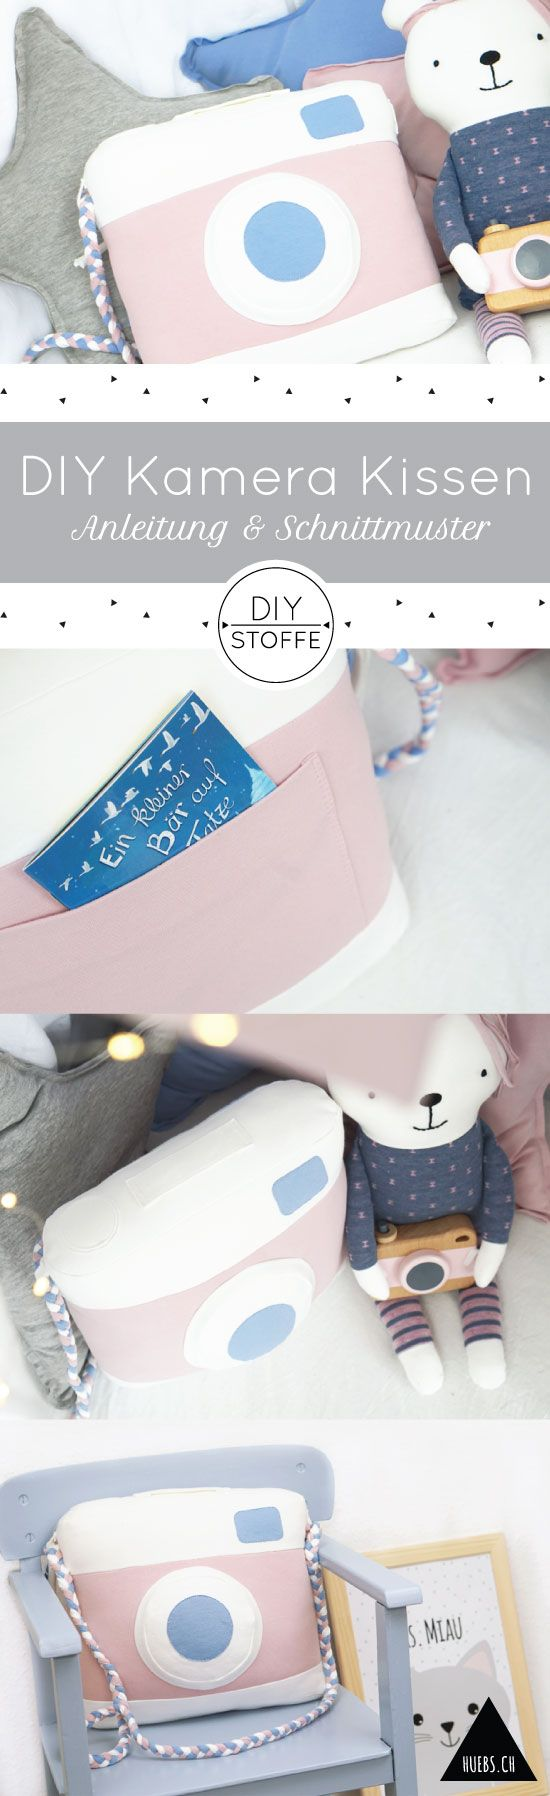 1162 best Nähen images on Pinterest | Sewing ideas, Sewing for kids ...